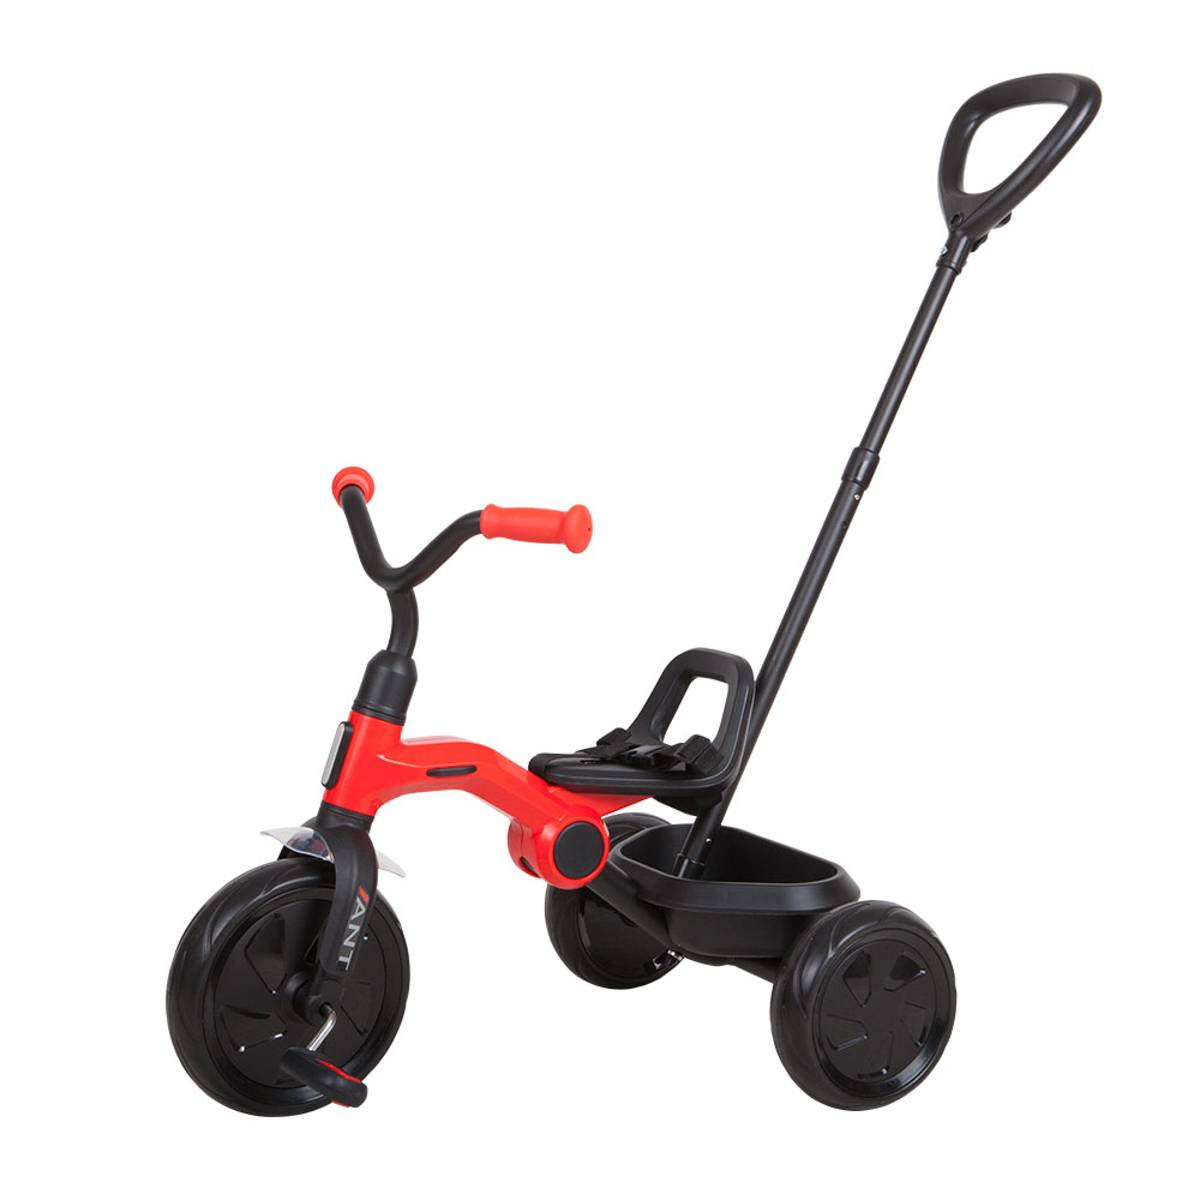 TRICICLO ANT ROJO T440